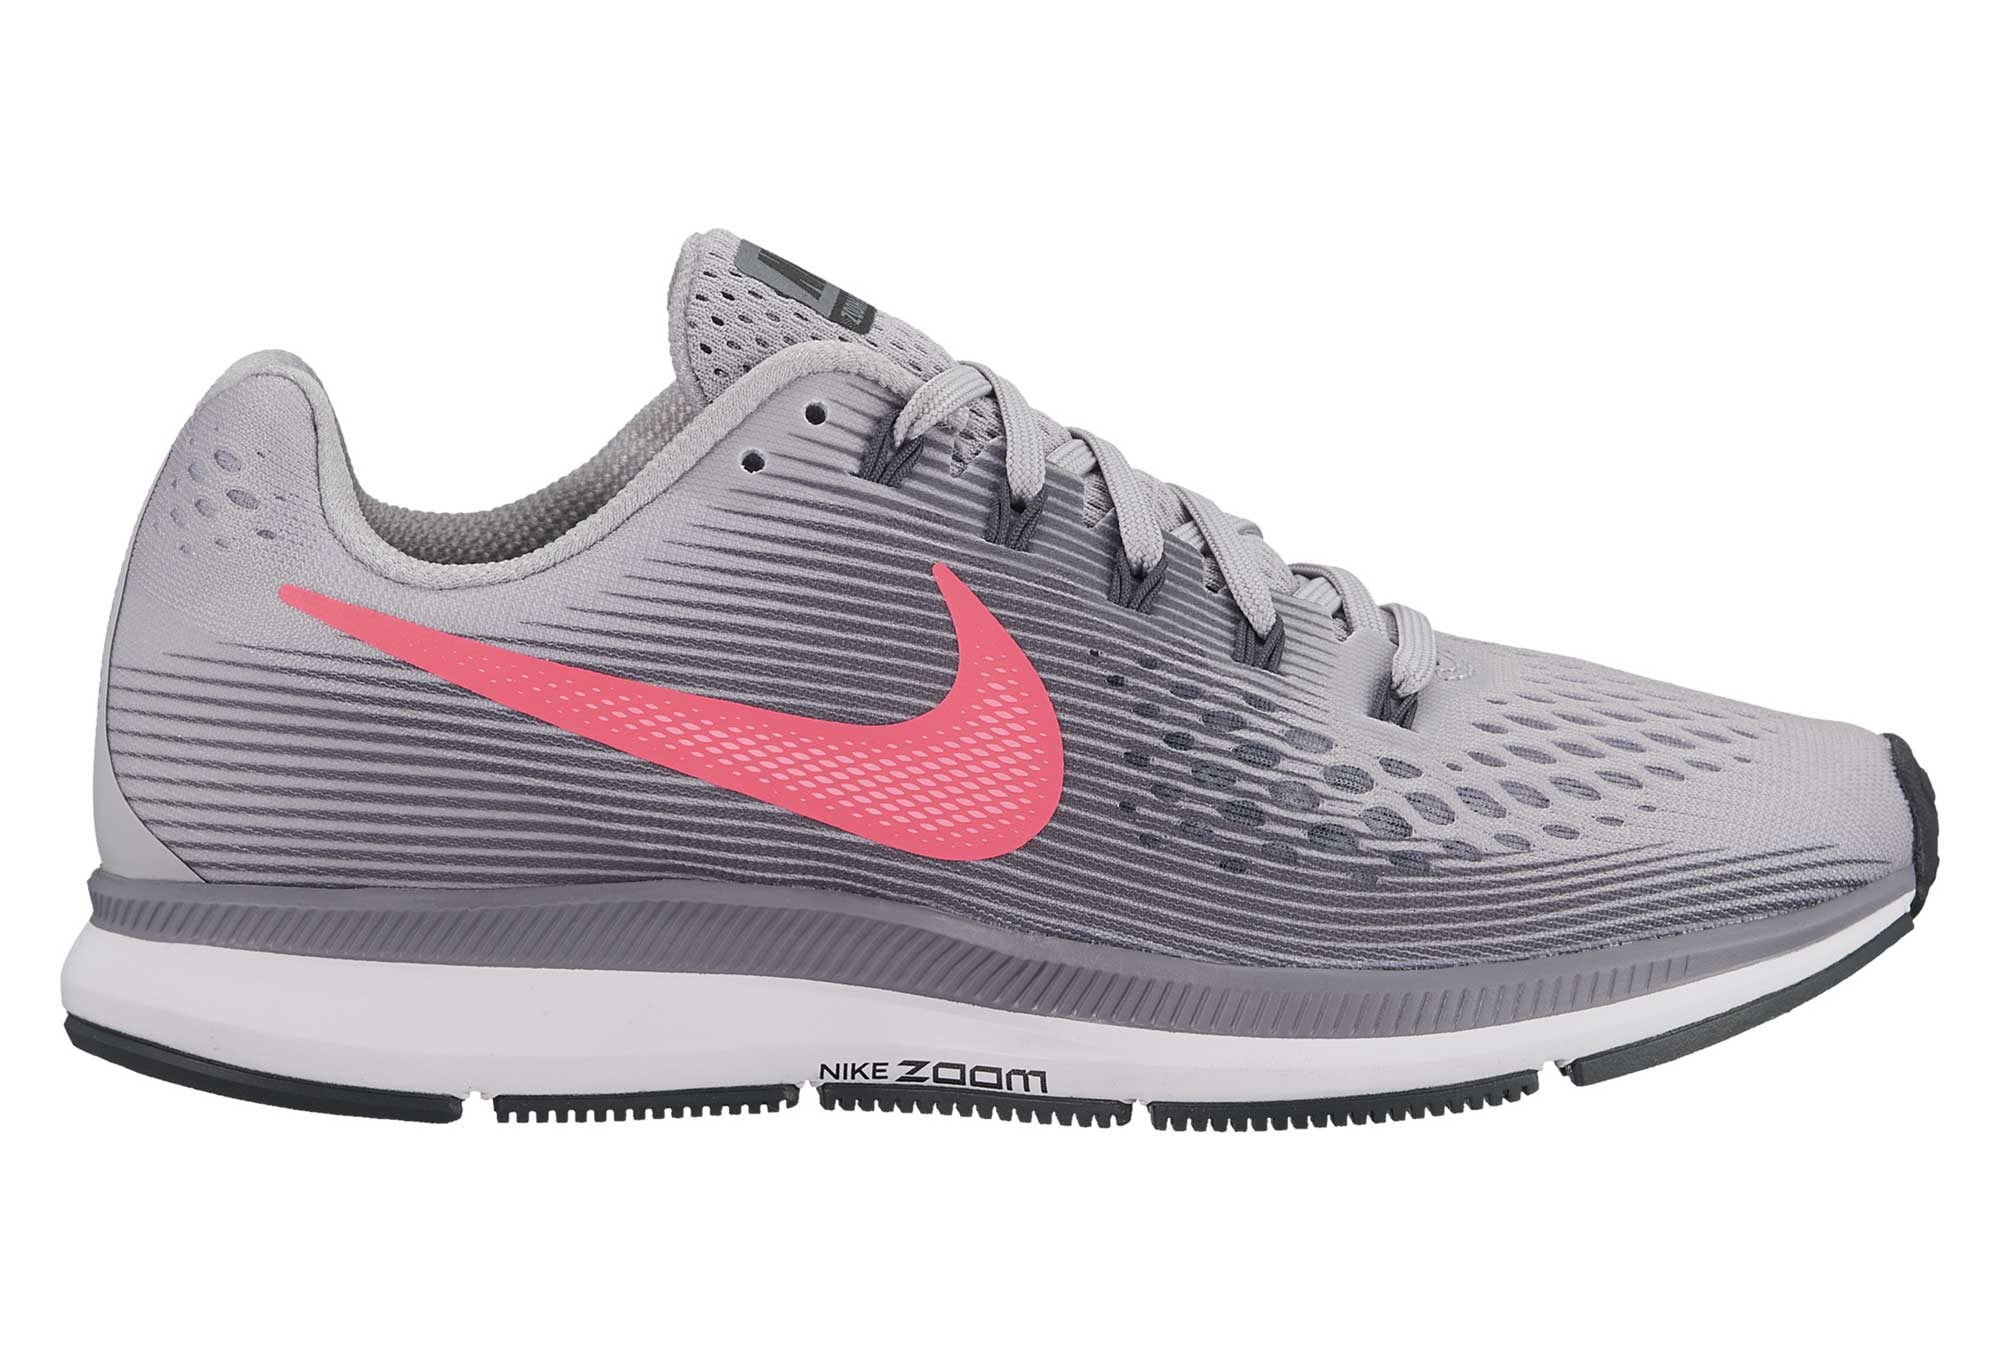 buy popular 1567e 33daa Chaussures de Running Femme Nike Air Zoom Pegasus 34 Gris  Rose